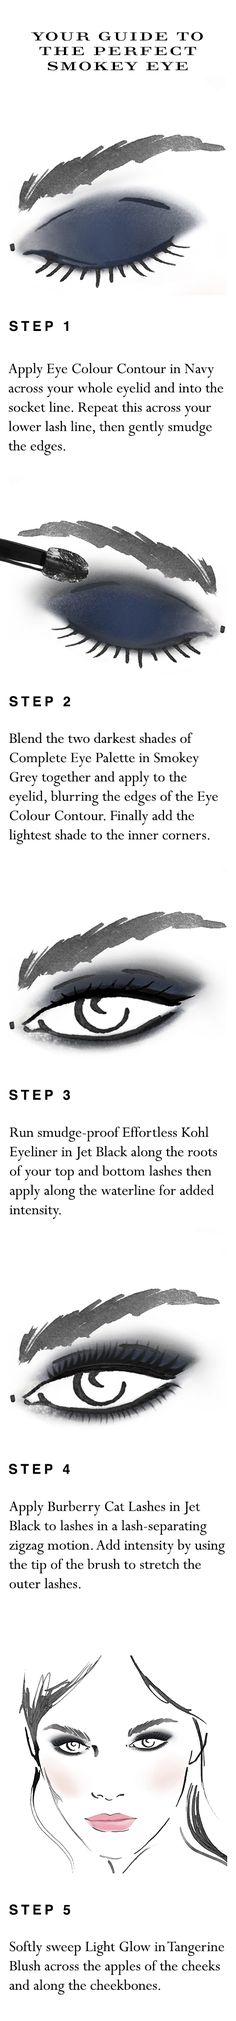 Your easy to follow make-up 'how to' for the perfect smokey eye in 15 minutes. Shop the complete look at Sephora.com and explore new Burberry Cat Lashes.